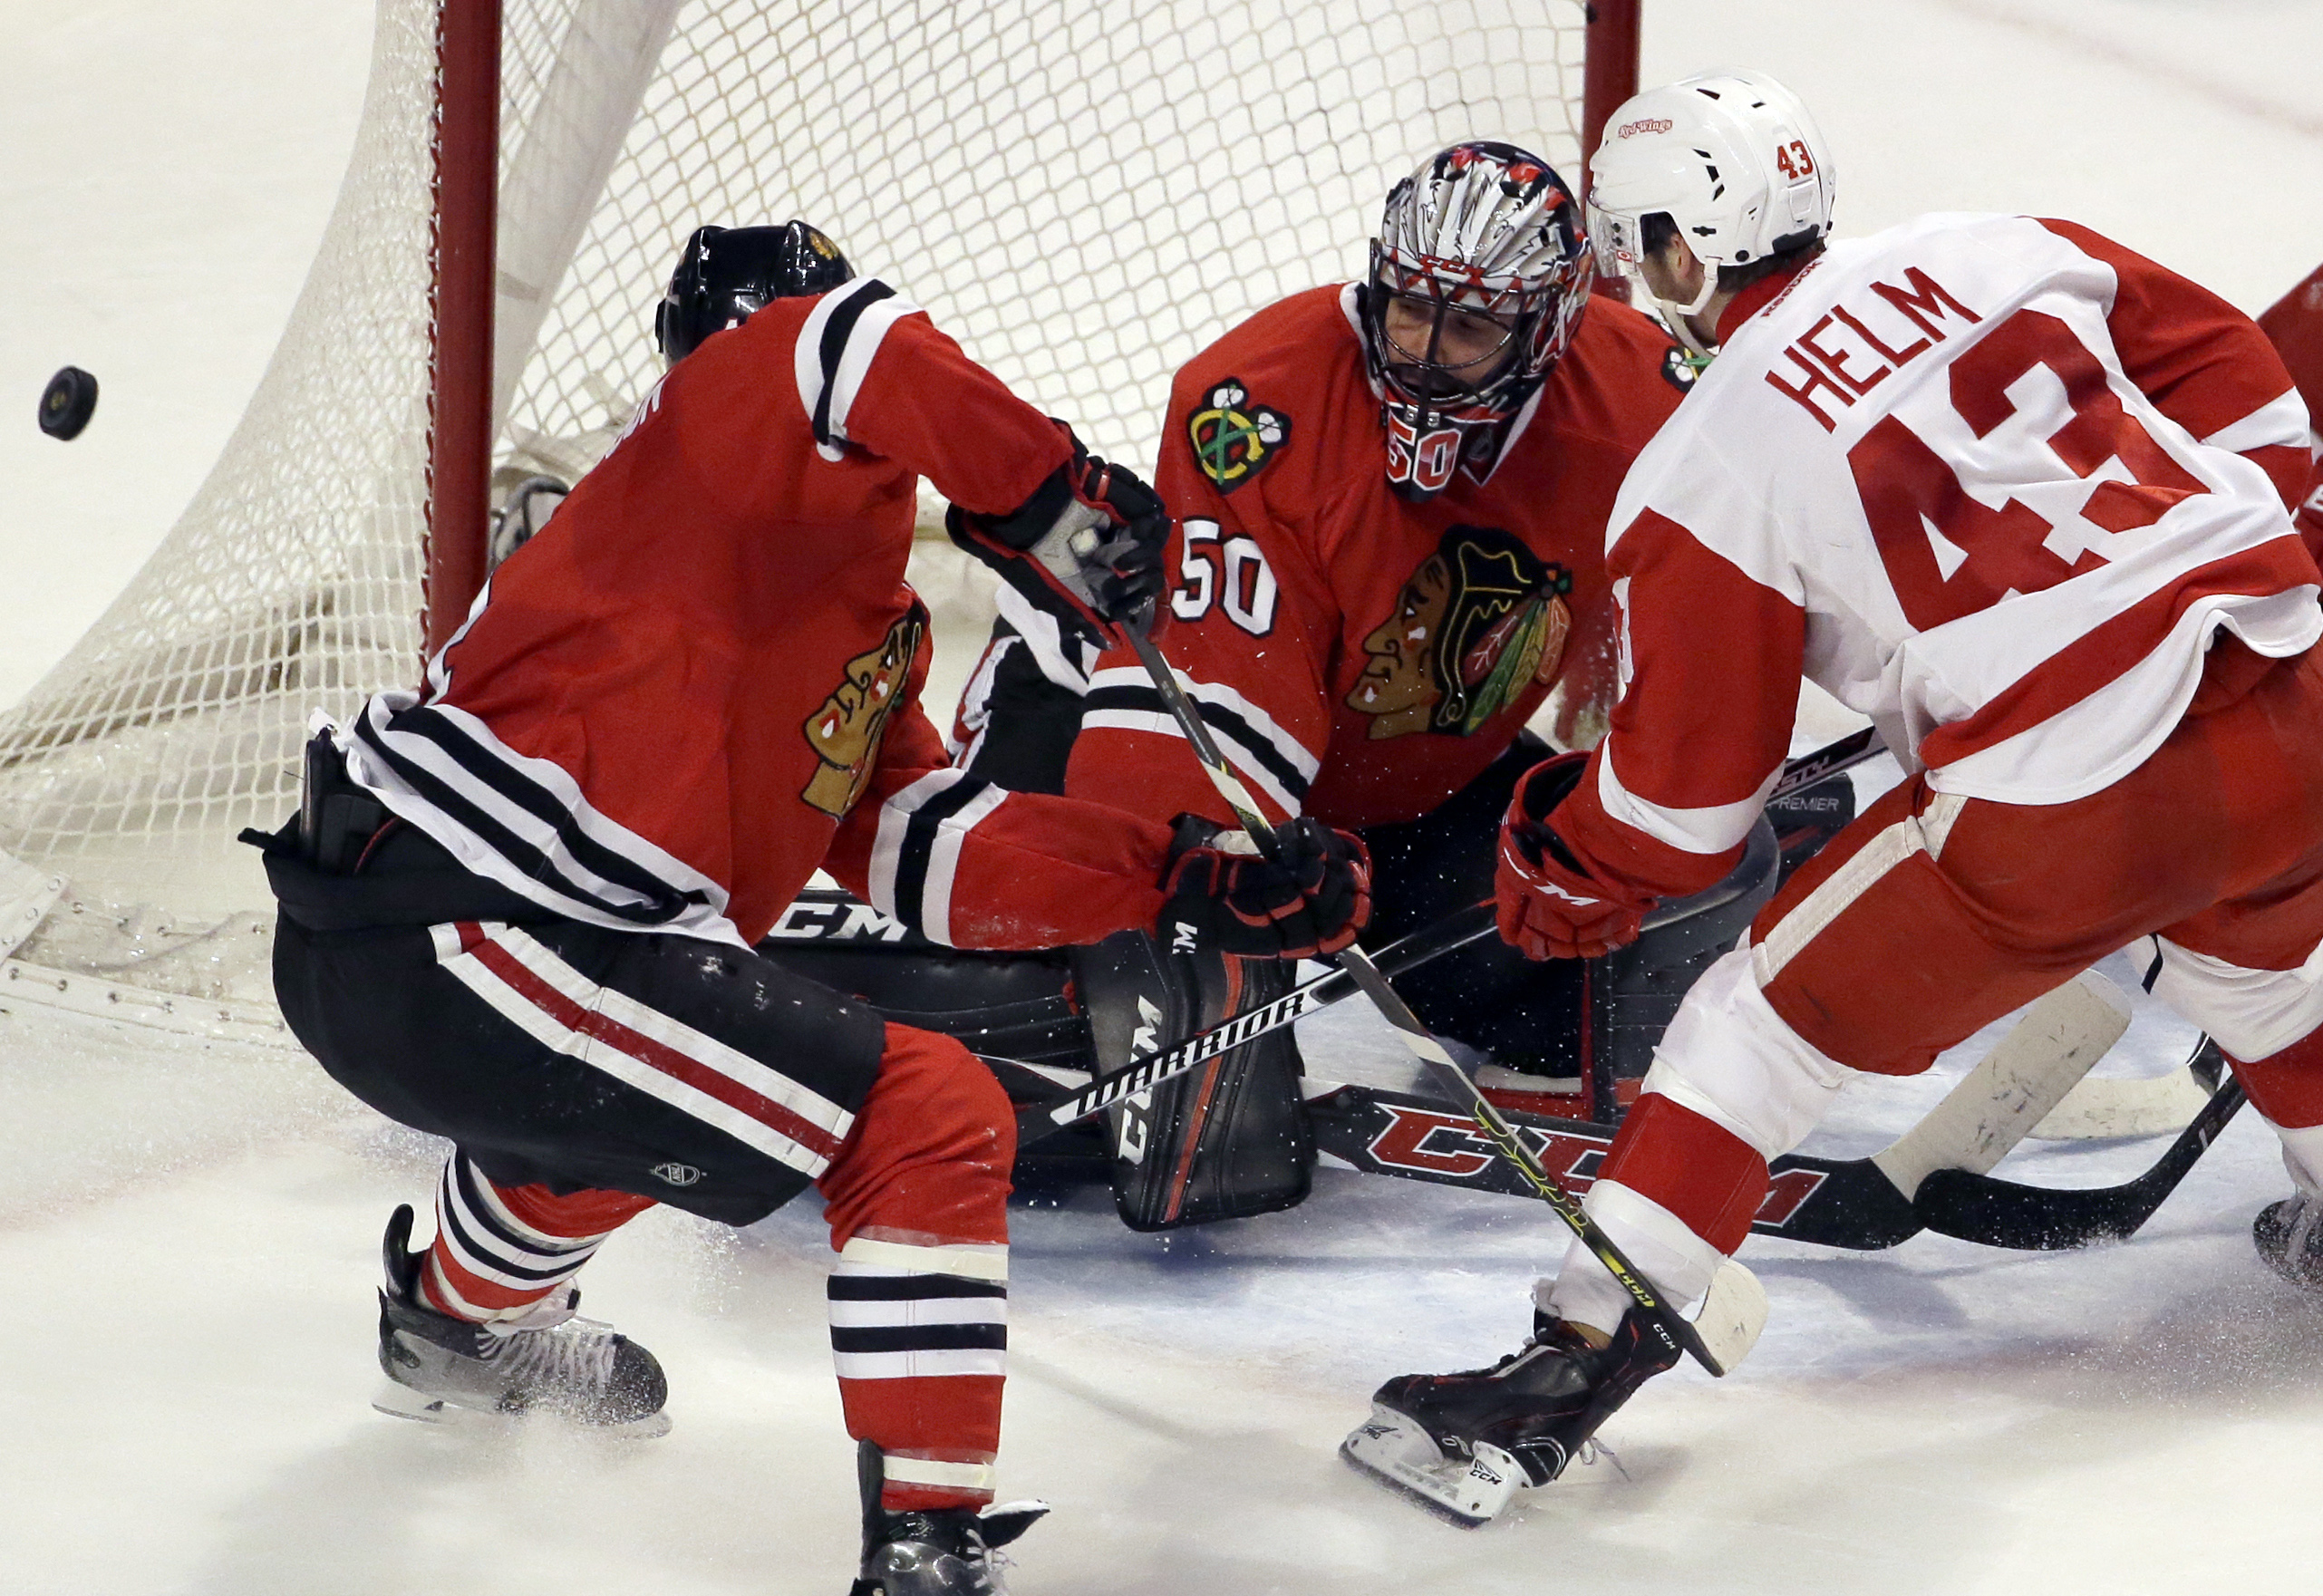 Chicago Blackhawks goalie Corey Crawford (50) blocks a shot by Detroit Red Wings center Darren Helm during the second period of an NHL hockey game Sunday, March 6, 2016, in Chicago. (AP Photo/Nam Y. Huh)